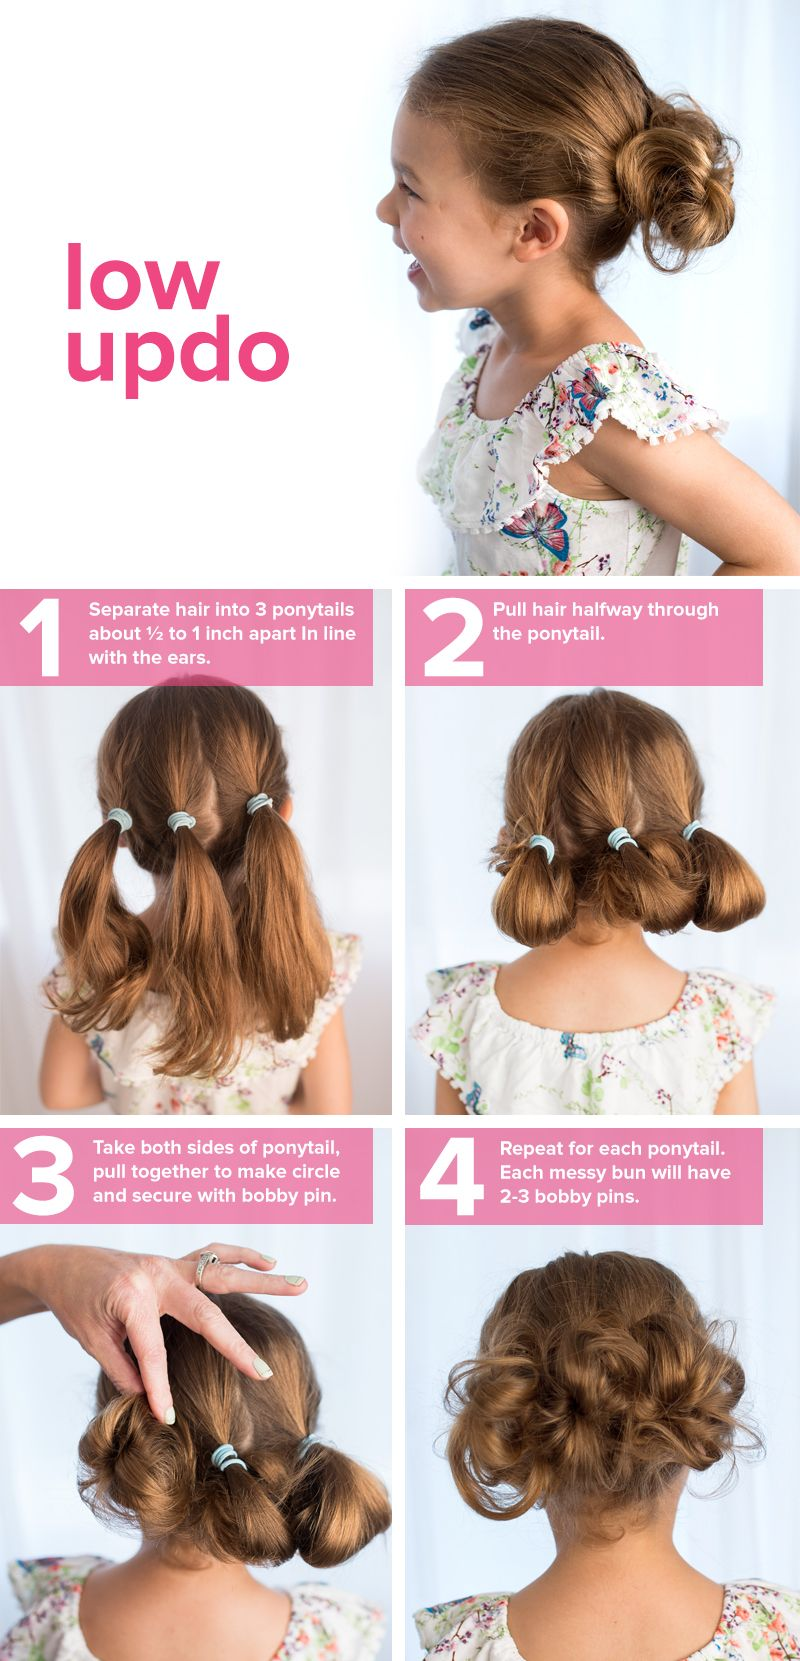 5 easy back-to school hairstyles for girls | BACK TO SCHOOL ...